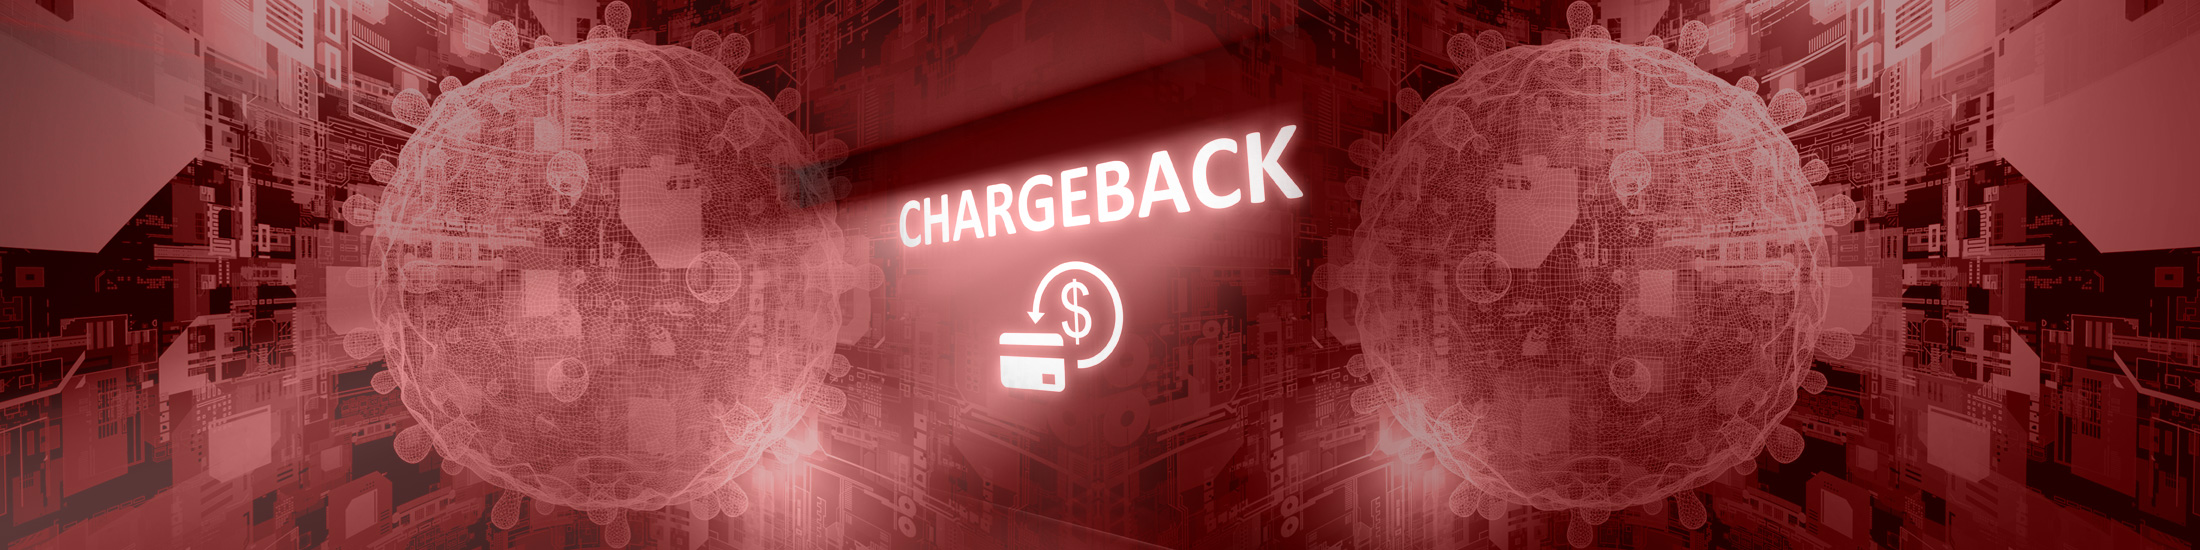 Covid Changed Chargebacks for E-Commerce Merchants, Says Report